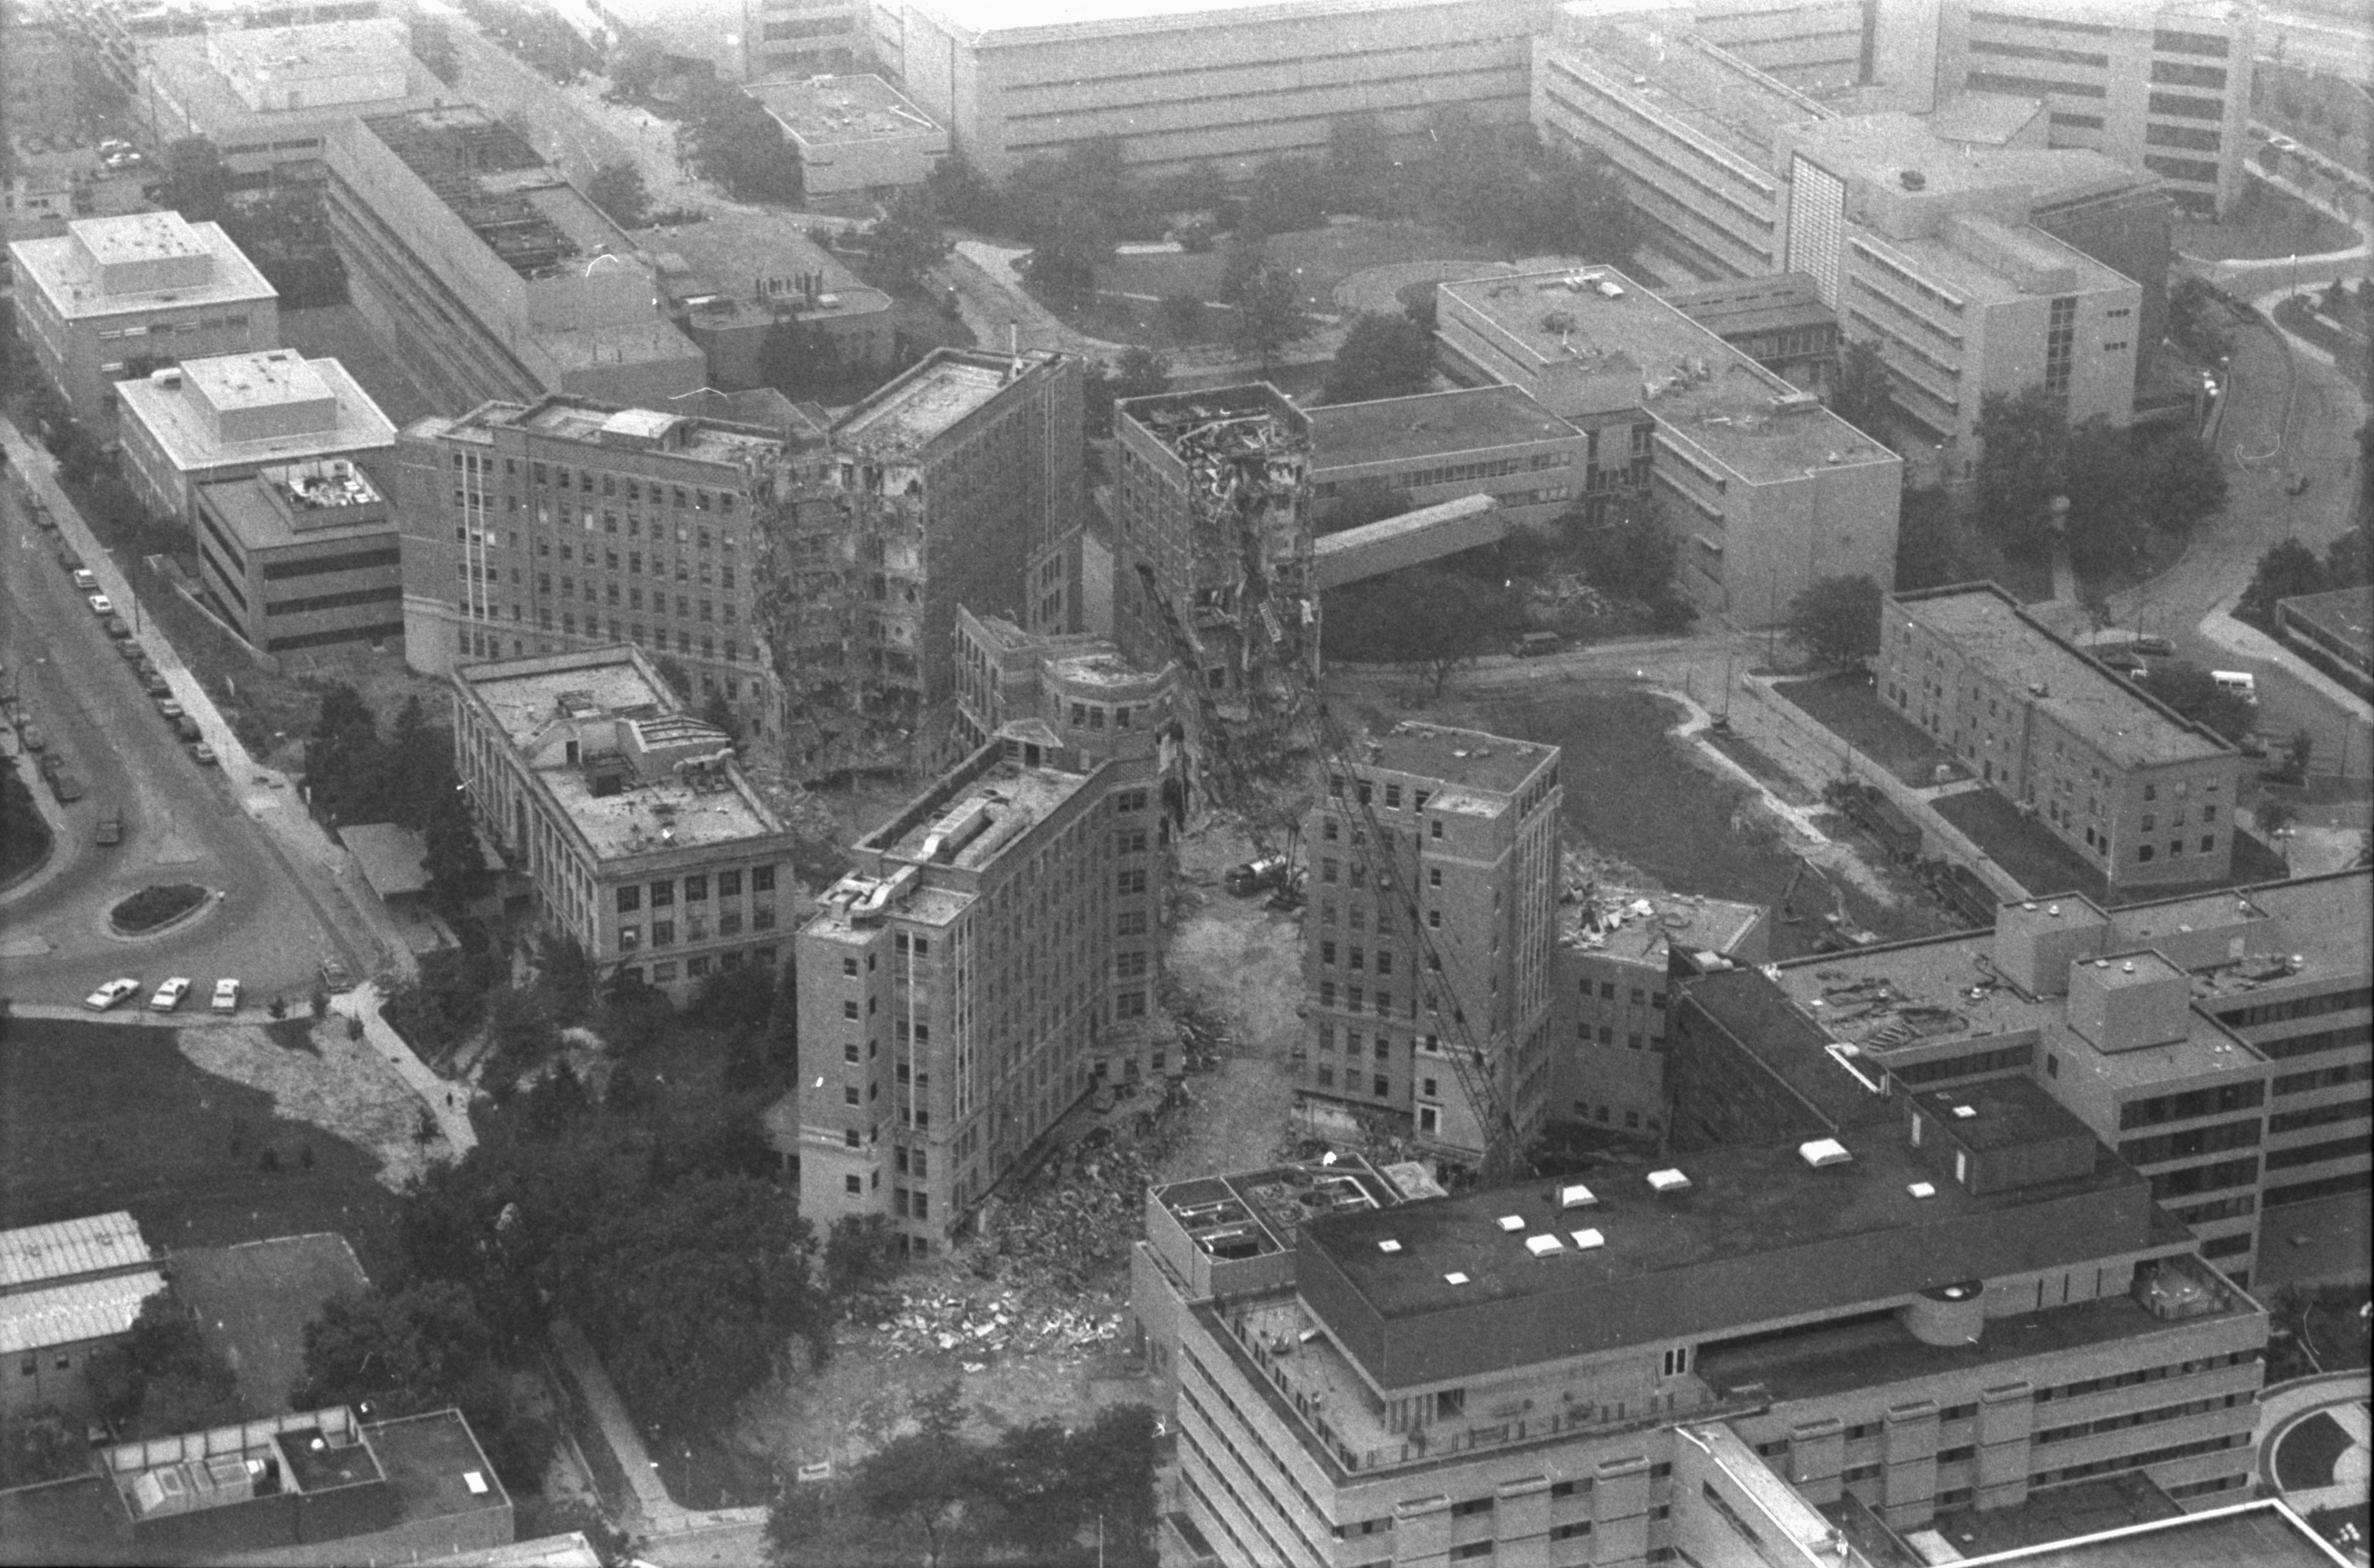 Aerial Photograph of University Hospital Demolition, July 1989 image